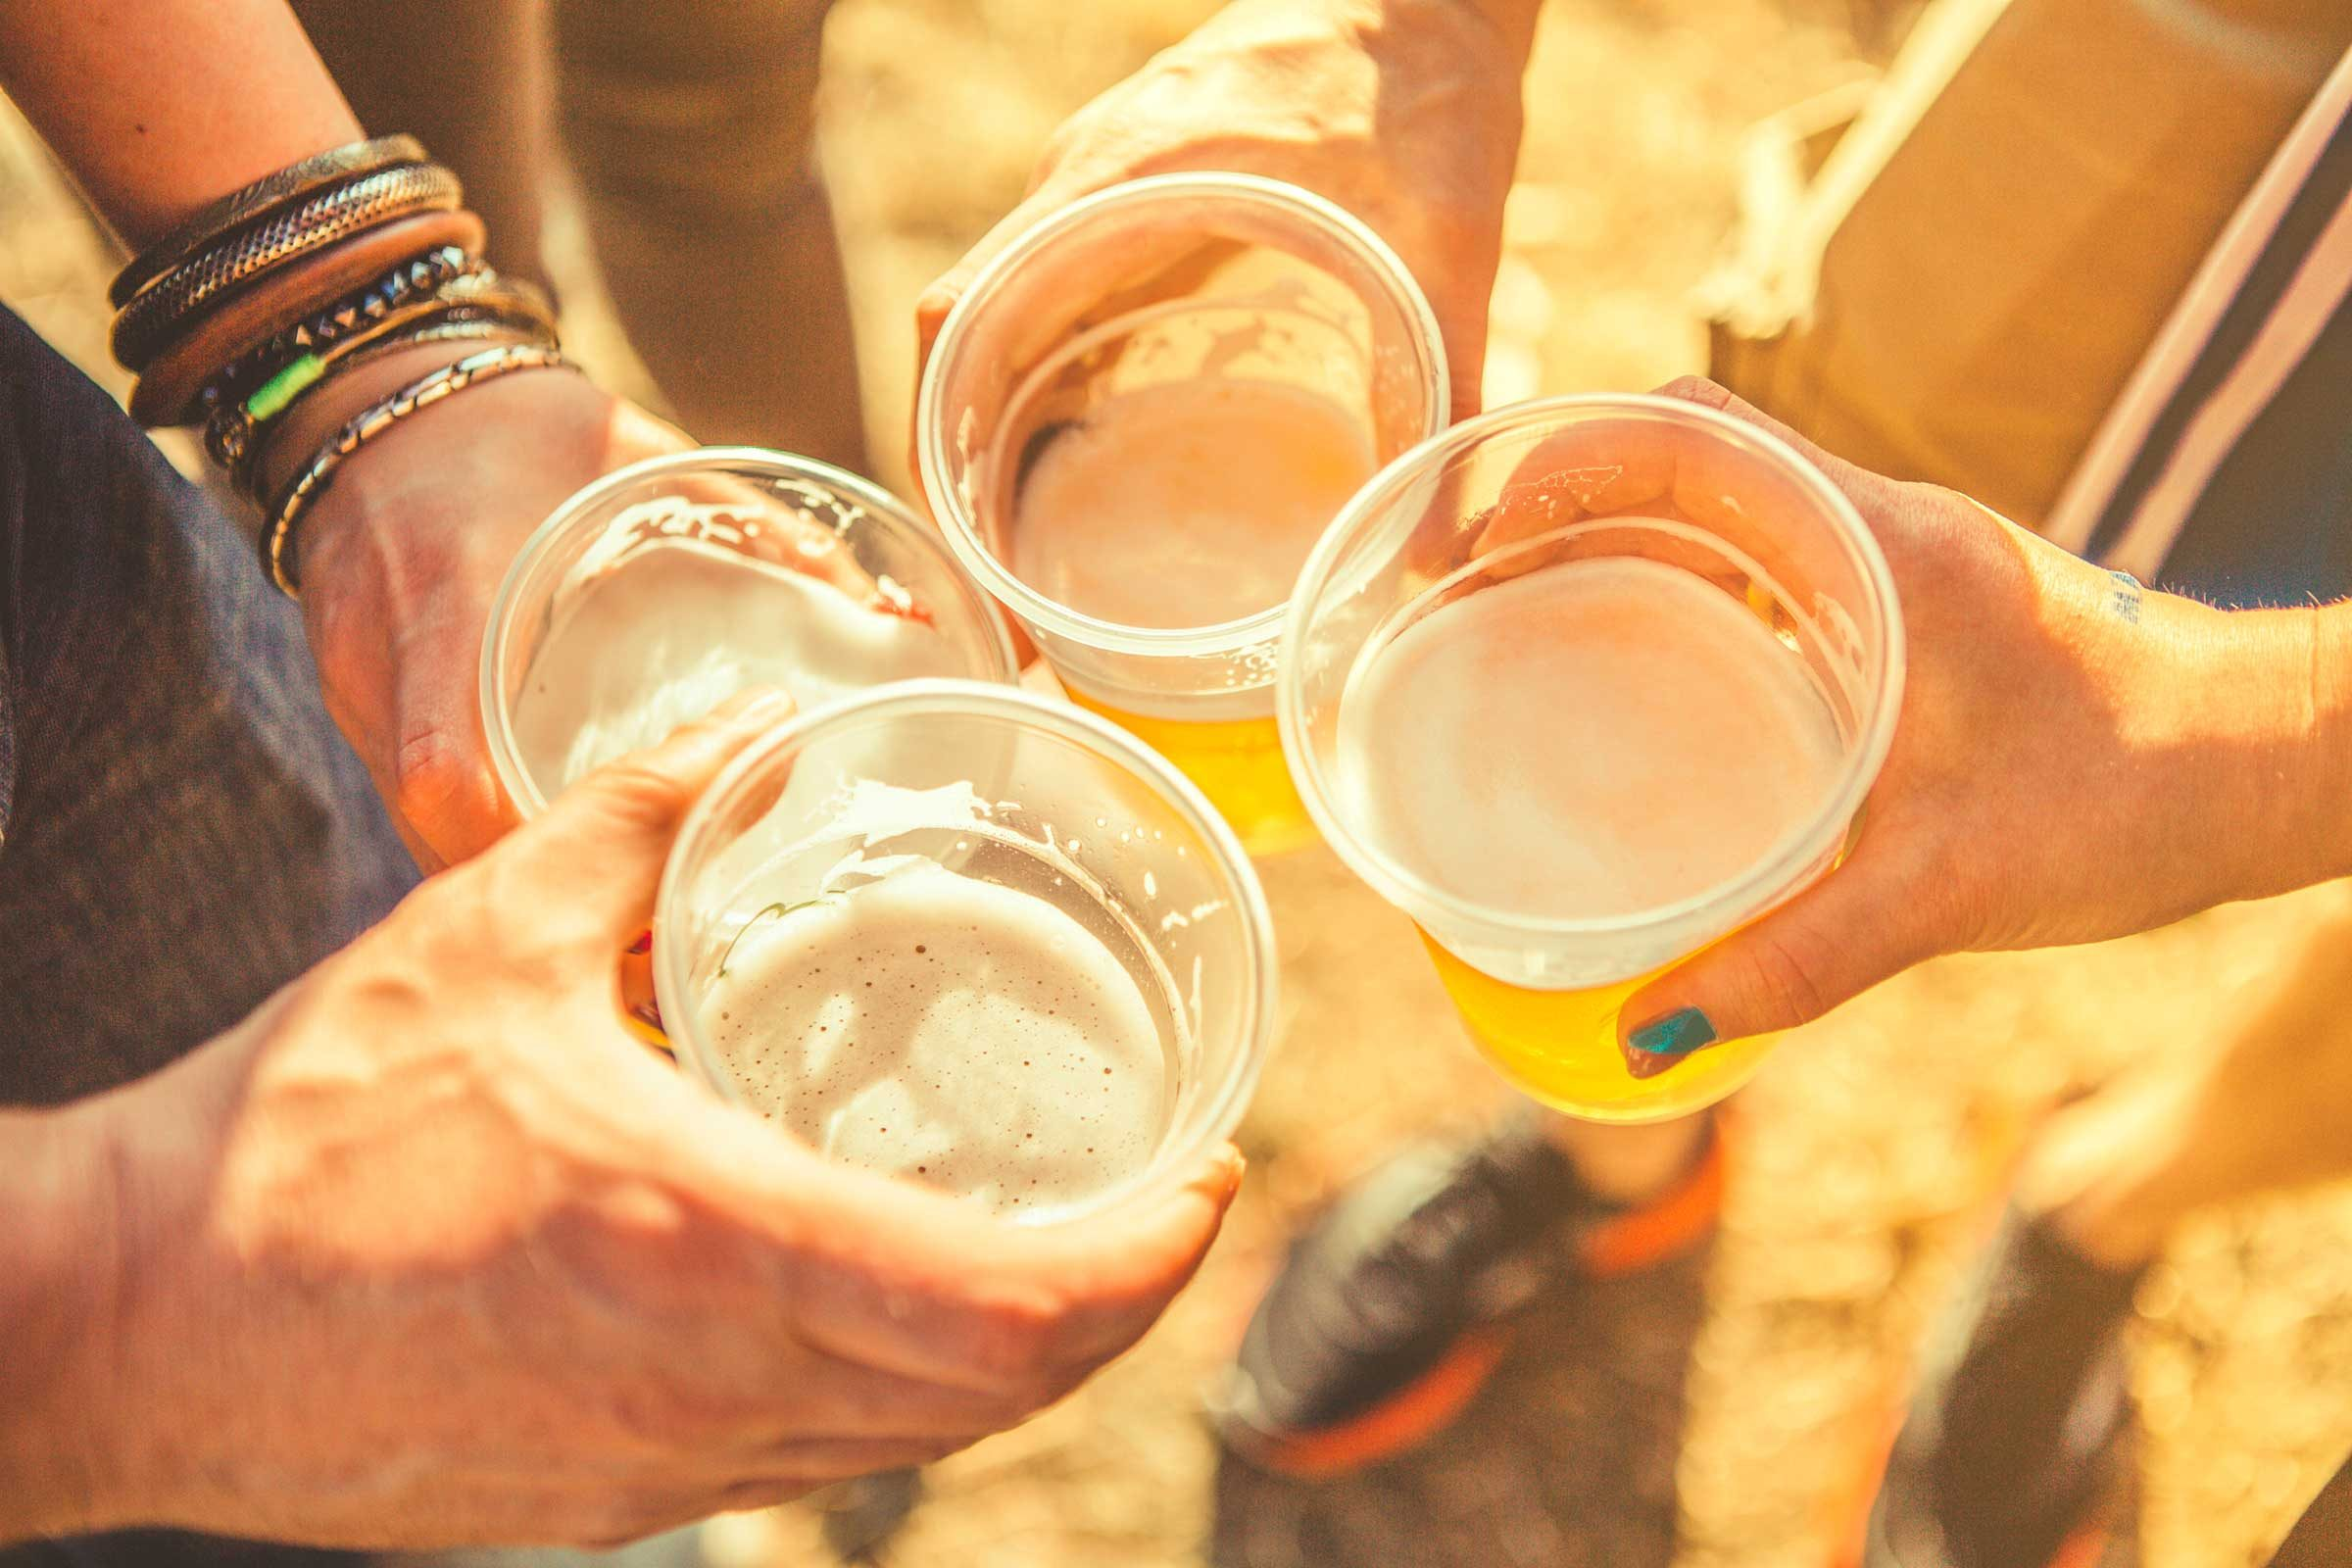 Are You A Binge Drinker Without Knowing It